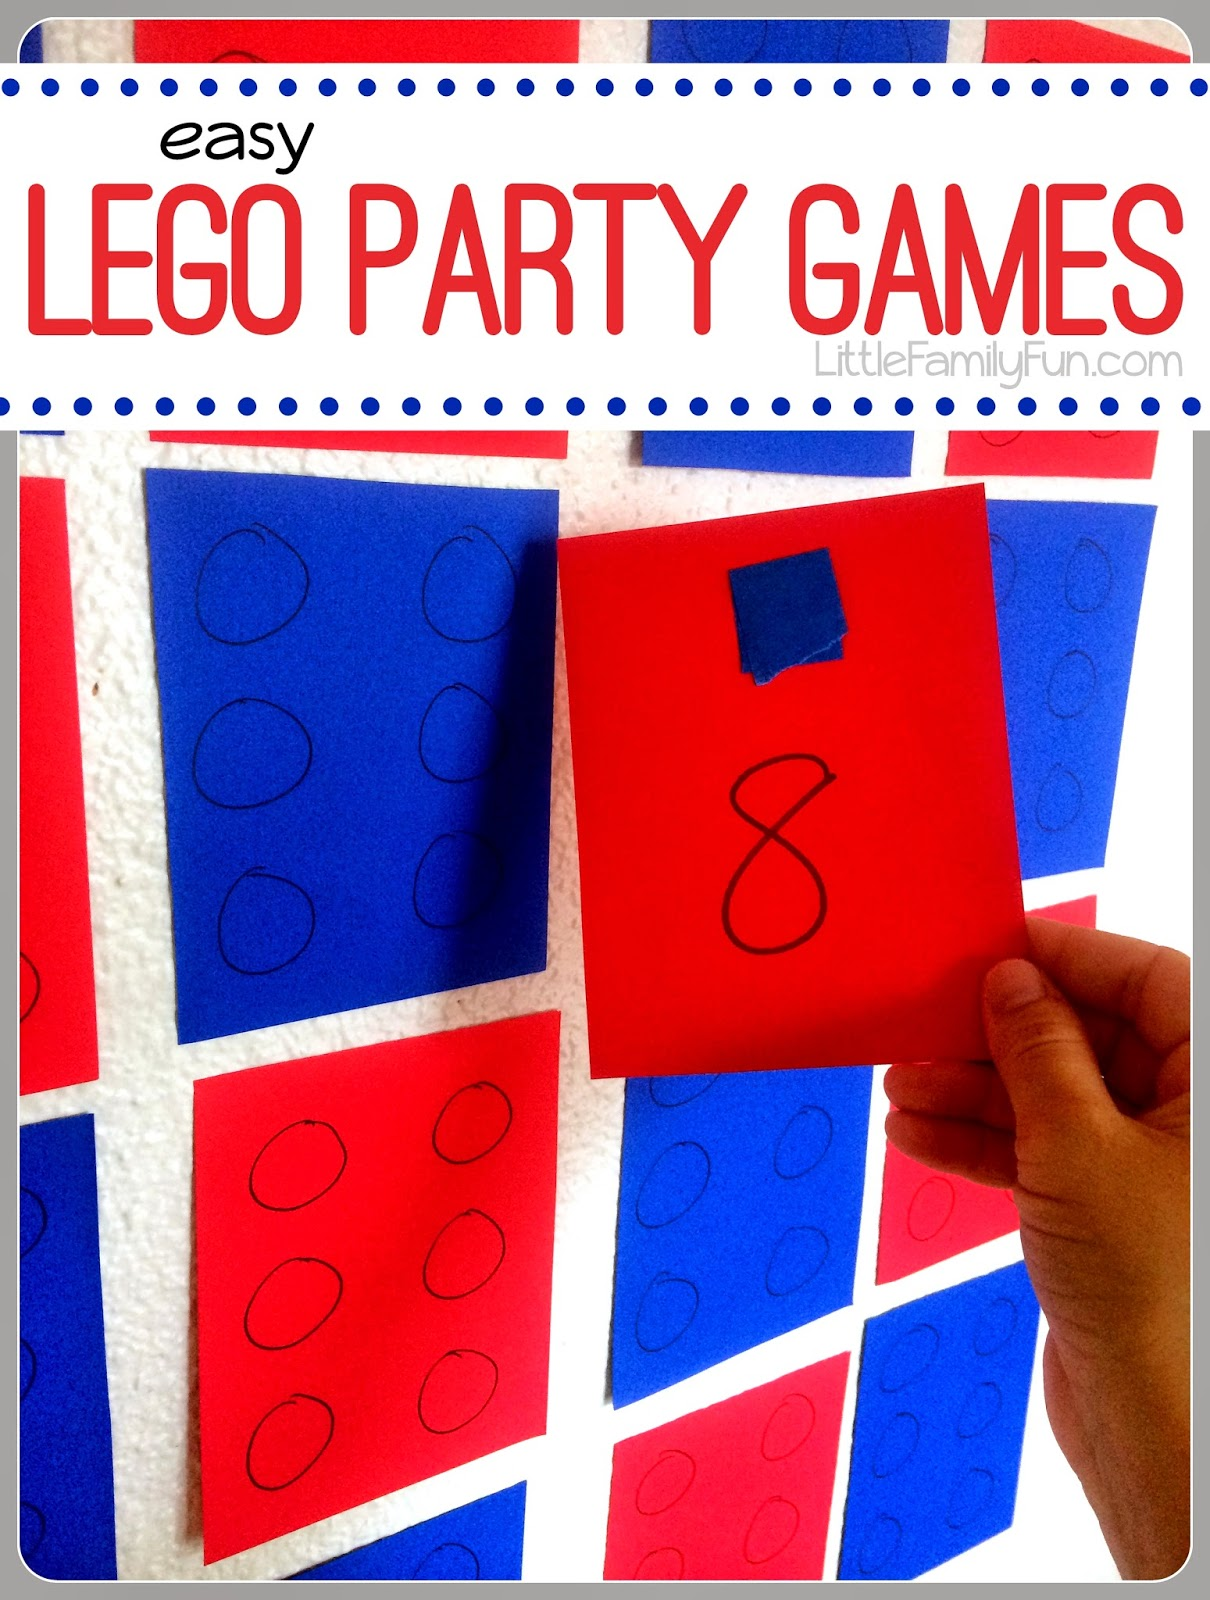 http://www.littlefamilyfun.com/2014/04/lego-party-games.html